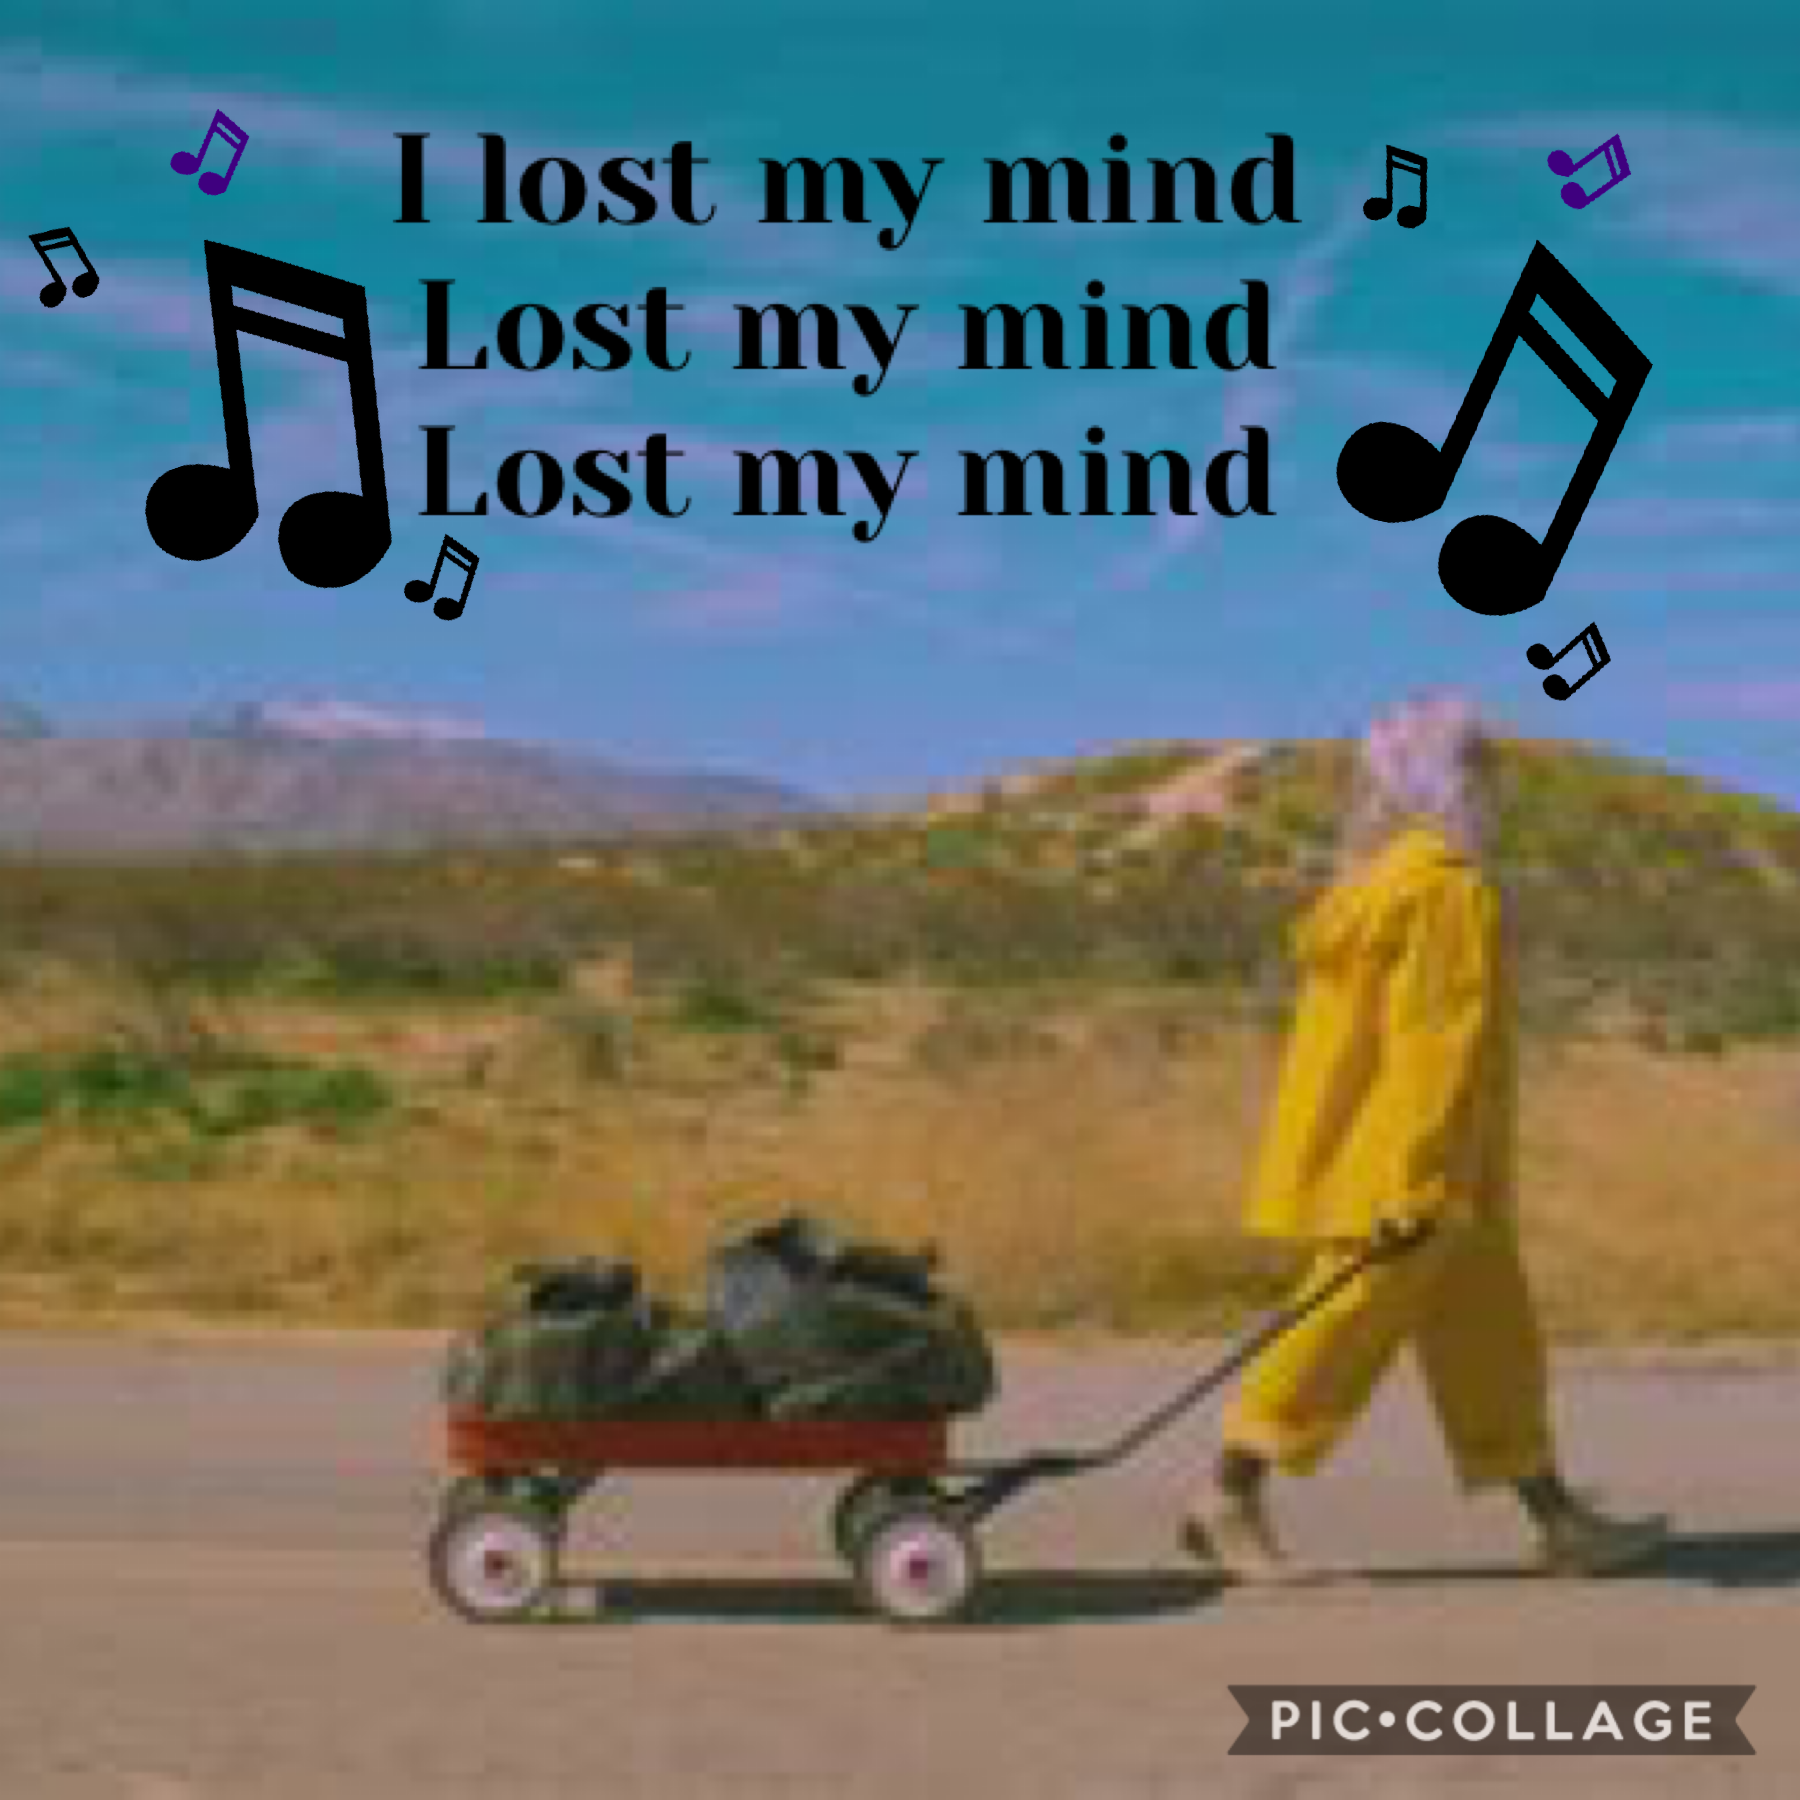 I know ur out there Billie Eilish fans! 💛💛🎵🎶